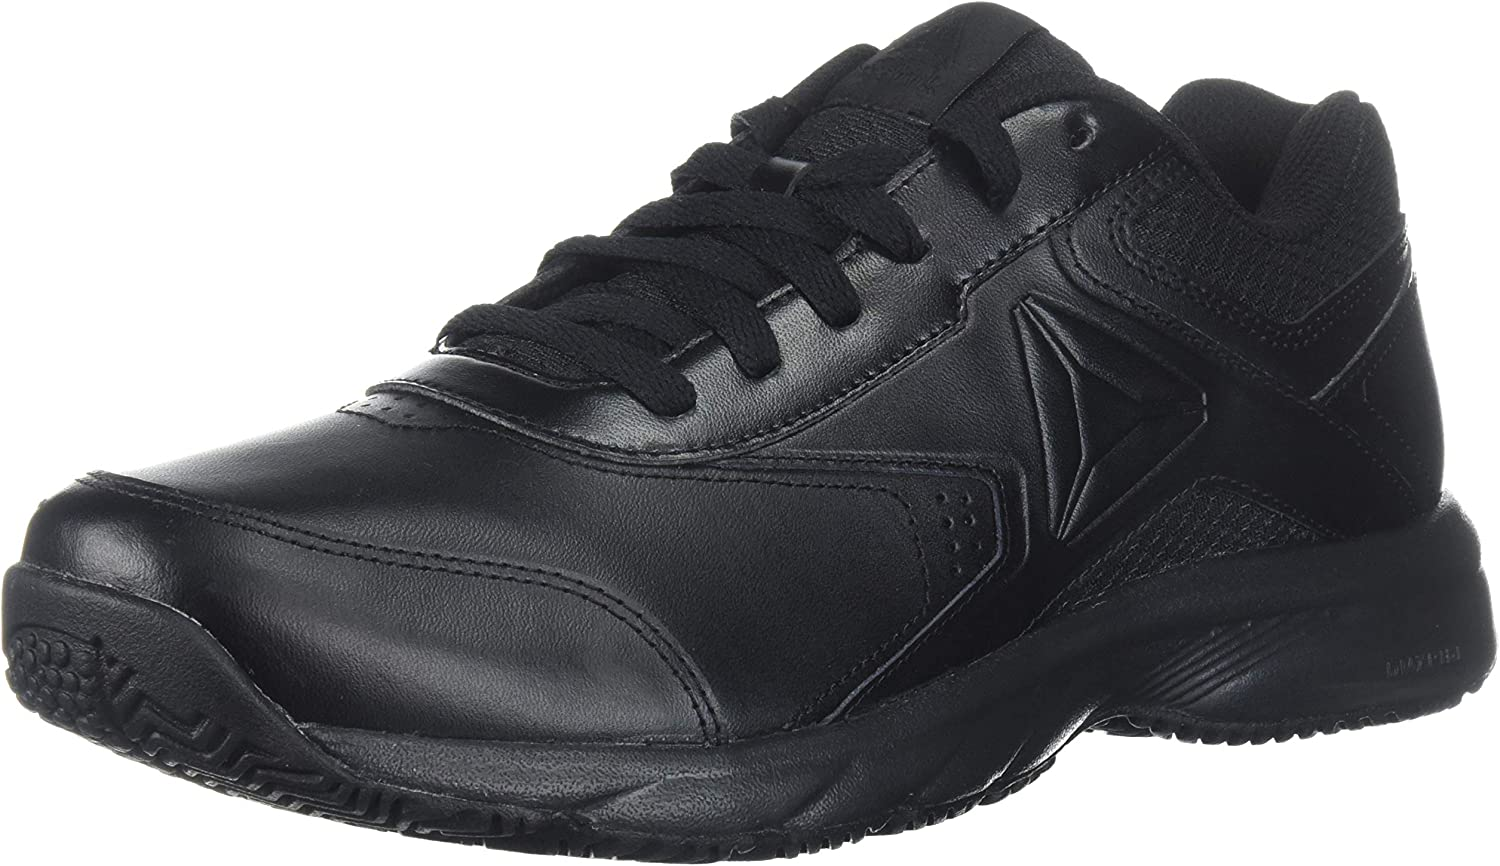 Reebok Men's Work N Cushion 3.0 Ankle-High Leather Industrial and Construction shoes